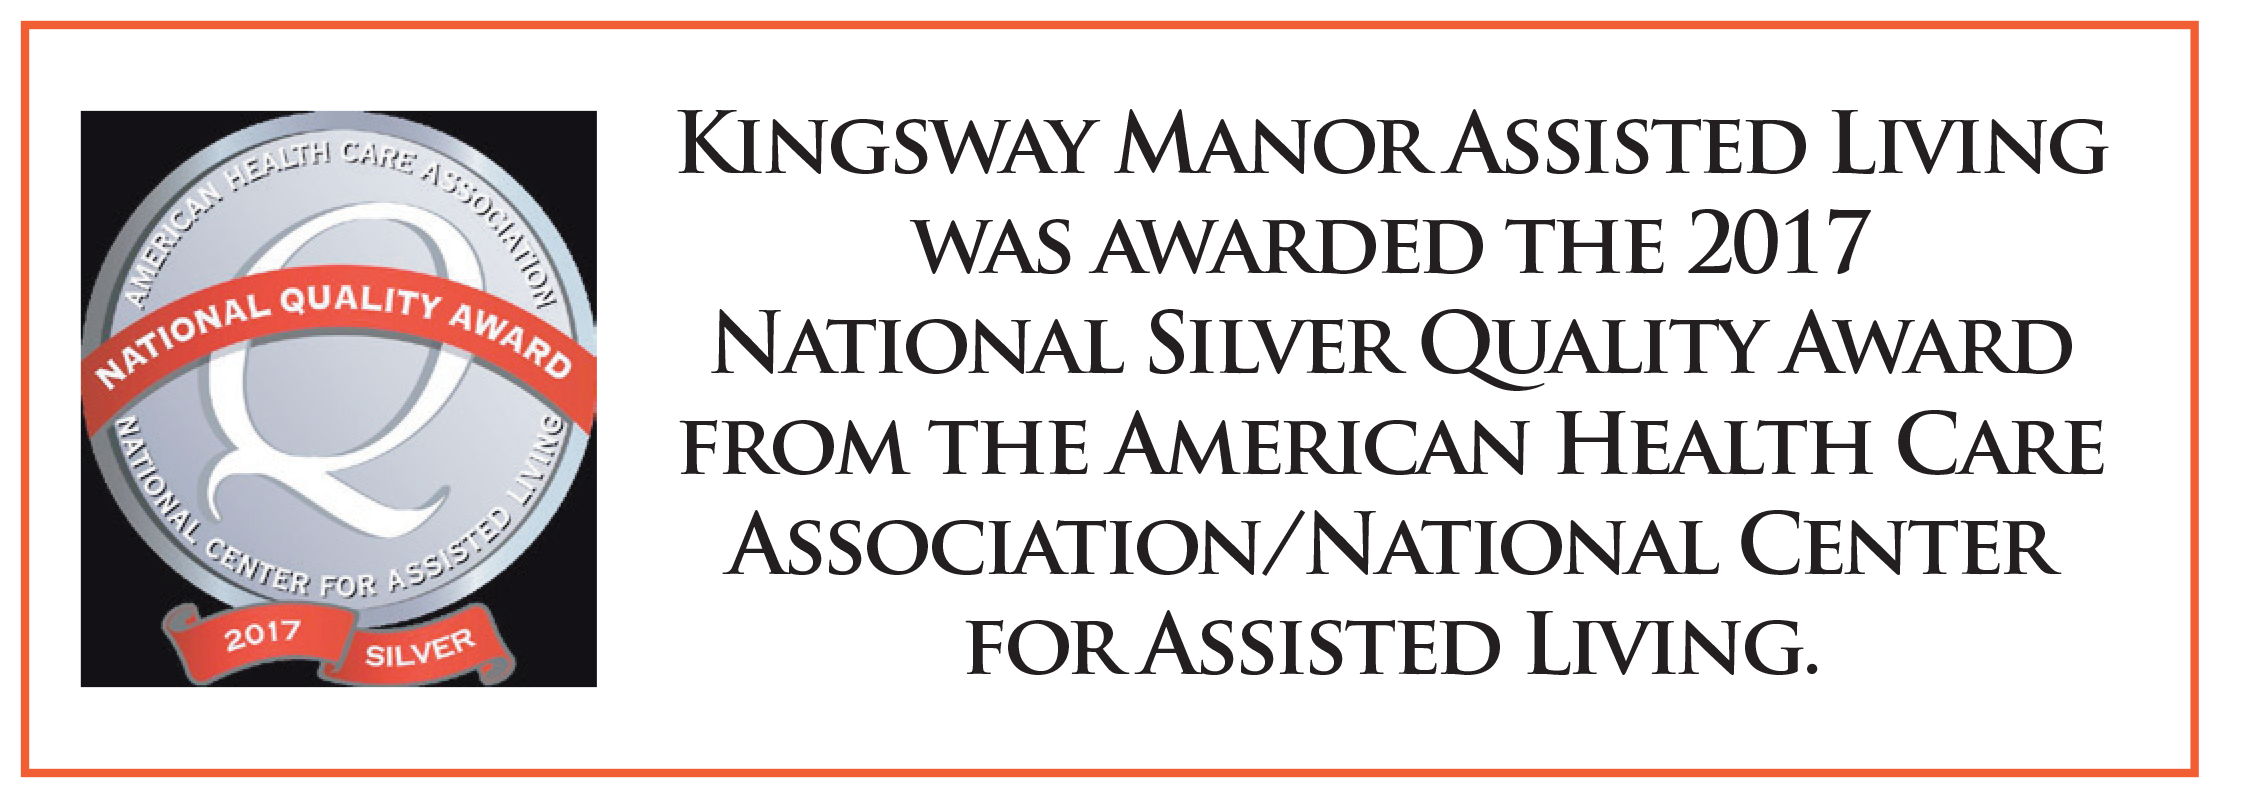 Assisted Living Kingsway Community